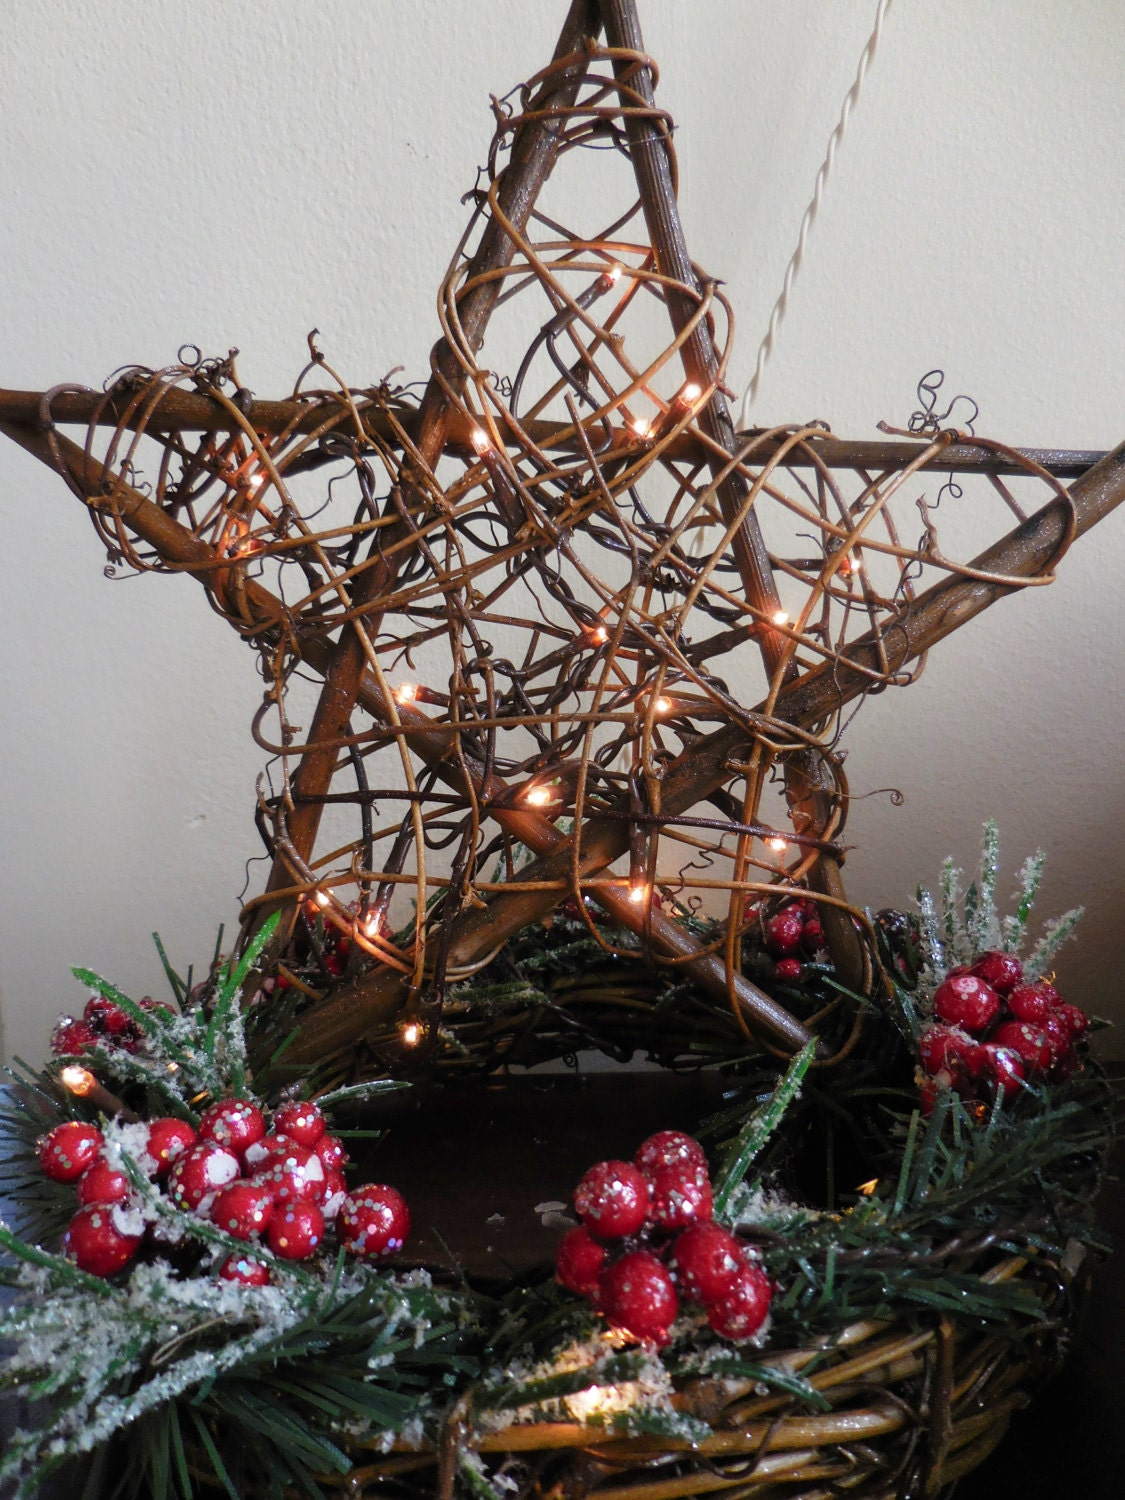 Grapevine Star Lighted Star Christmas Decor. Holiday Decor